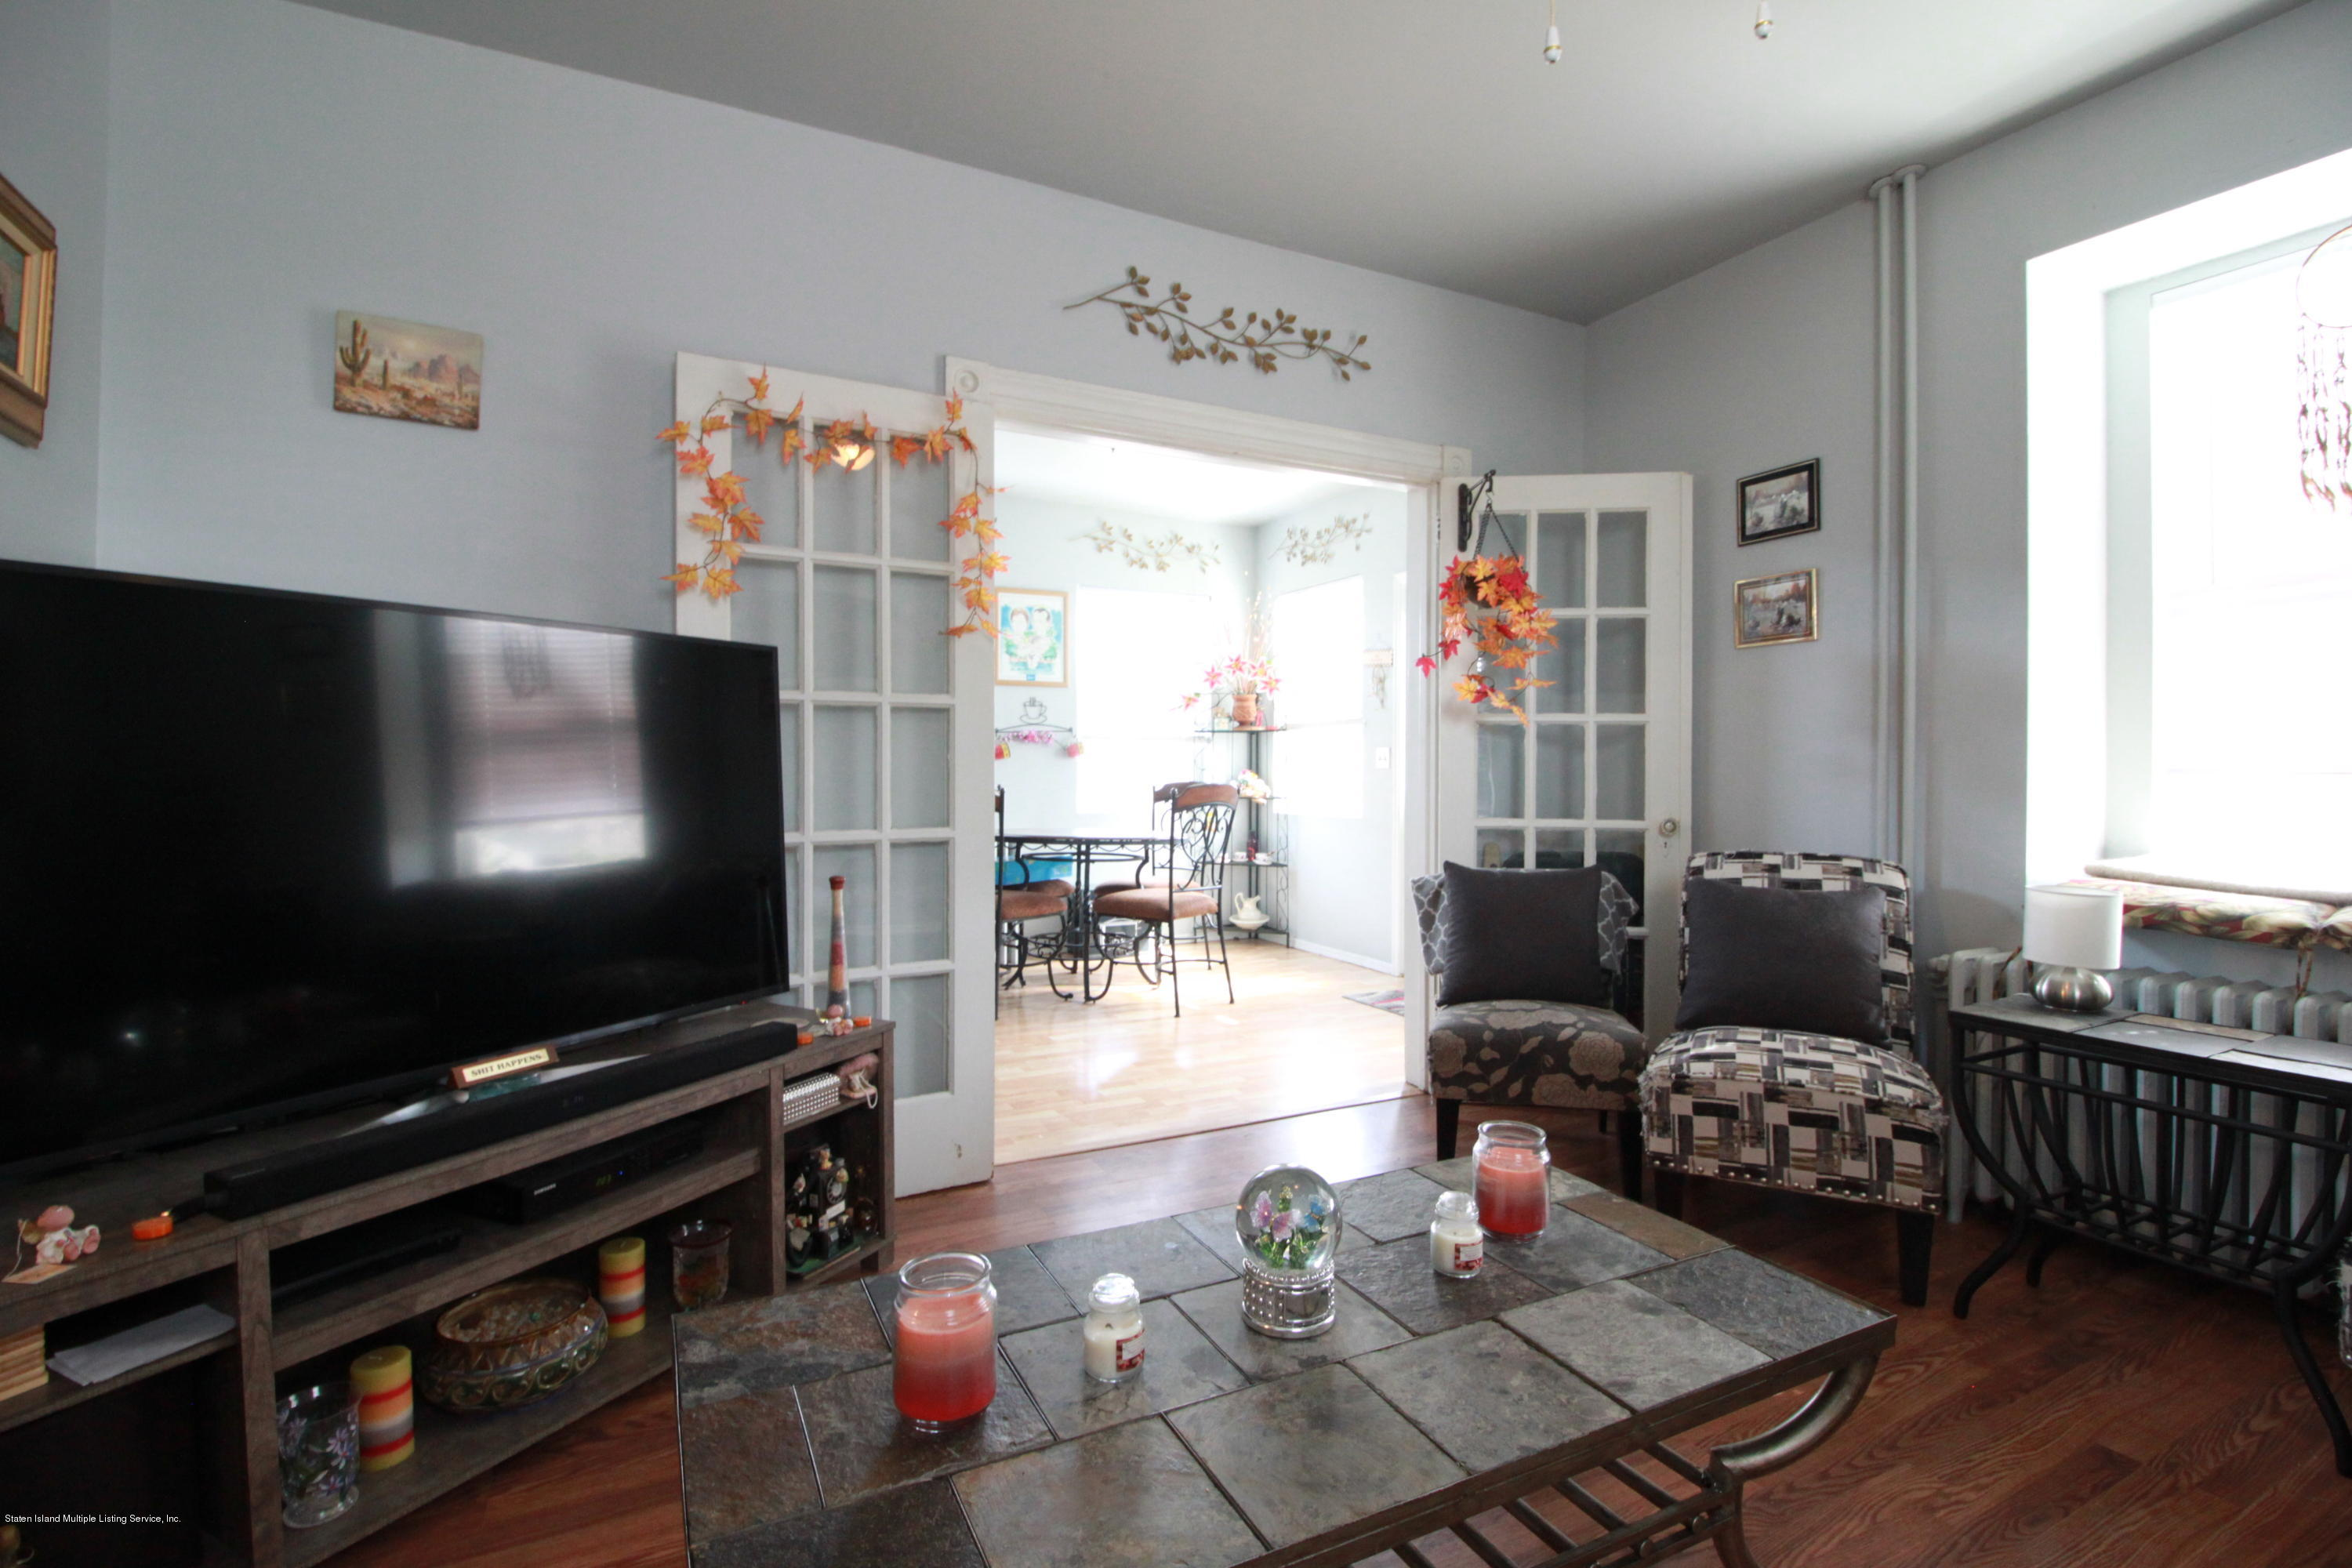 Single Family - Detached 27 Sideview Avenue  Staten Island, NY 10314, MLS-1129940-5